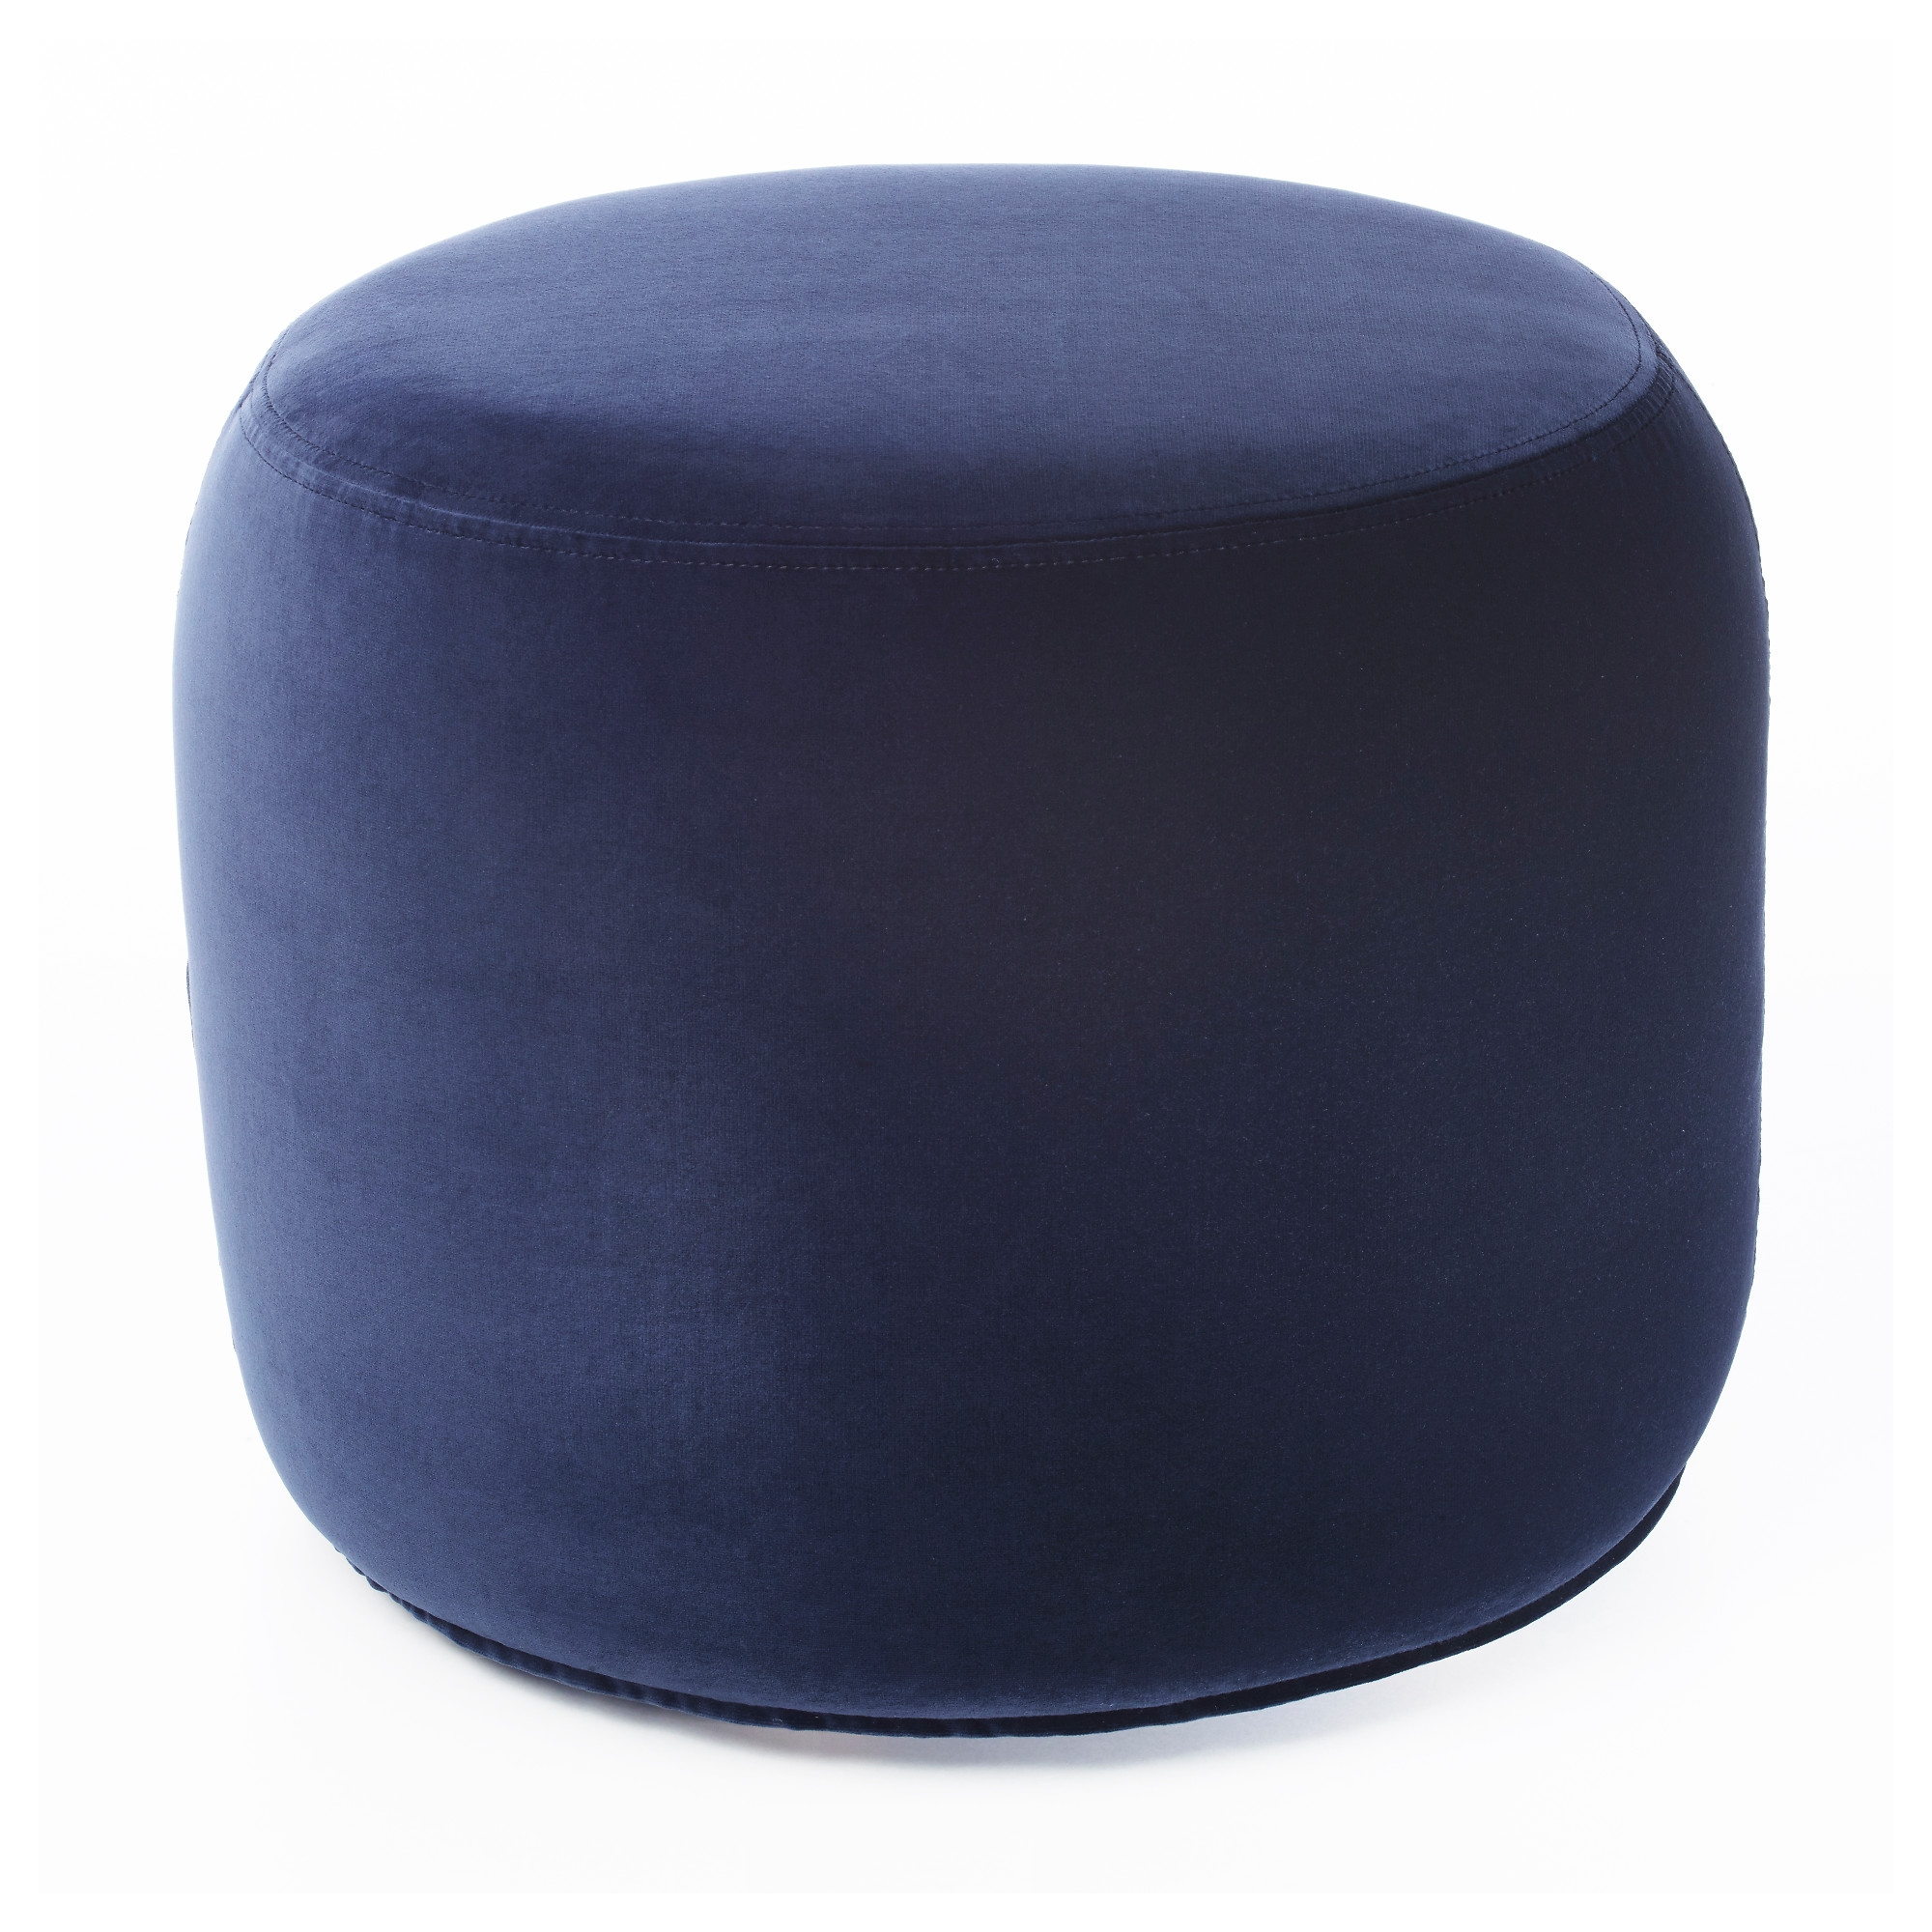 Footstools Ottomans Pouffes Ikea With Cheap Footstools And Pouffes (View 11 of 15)